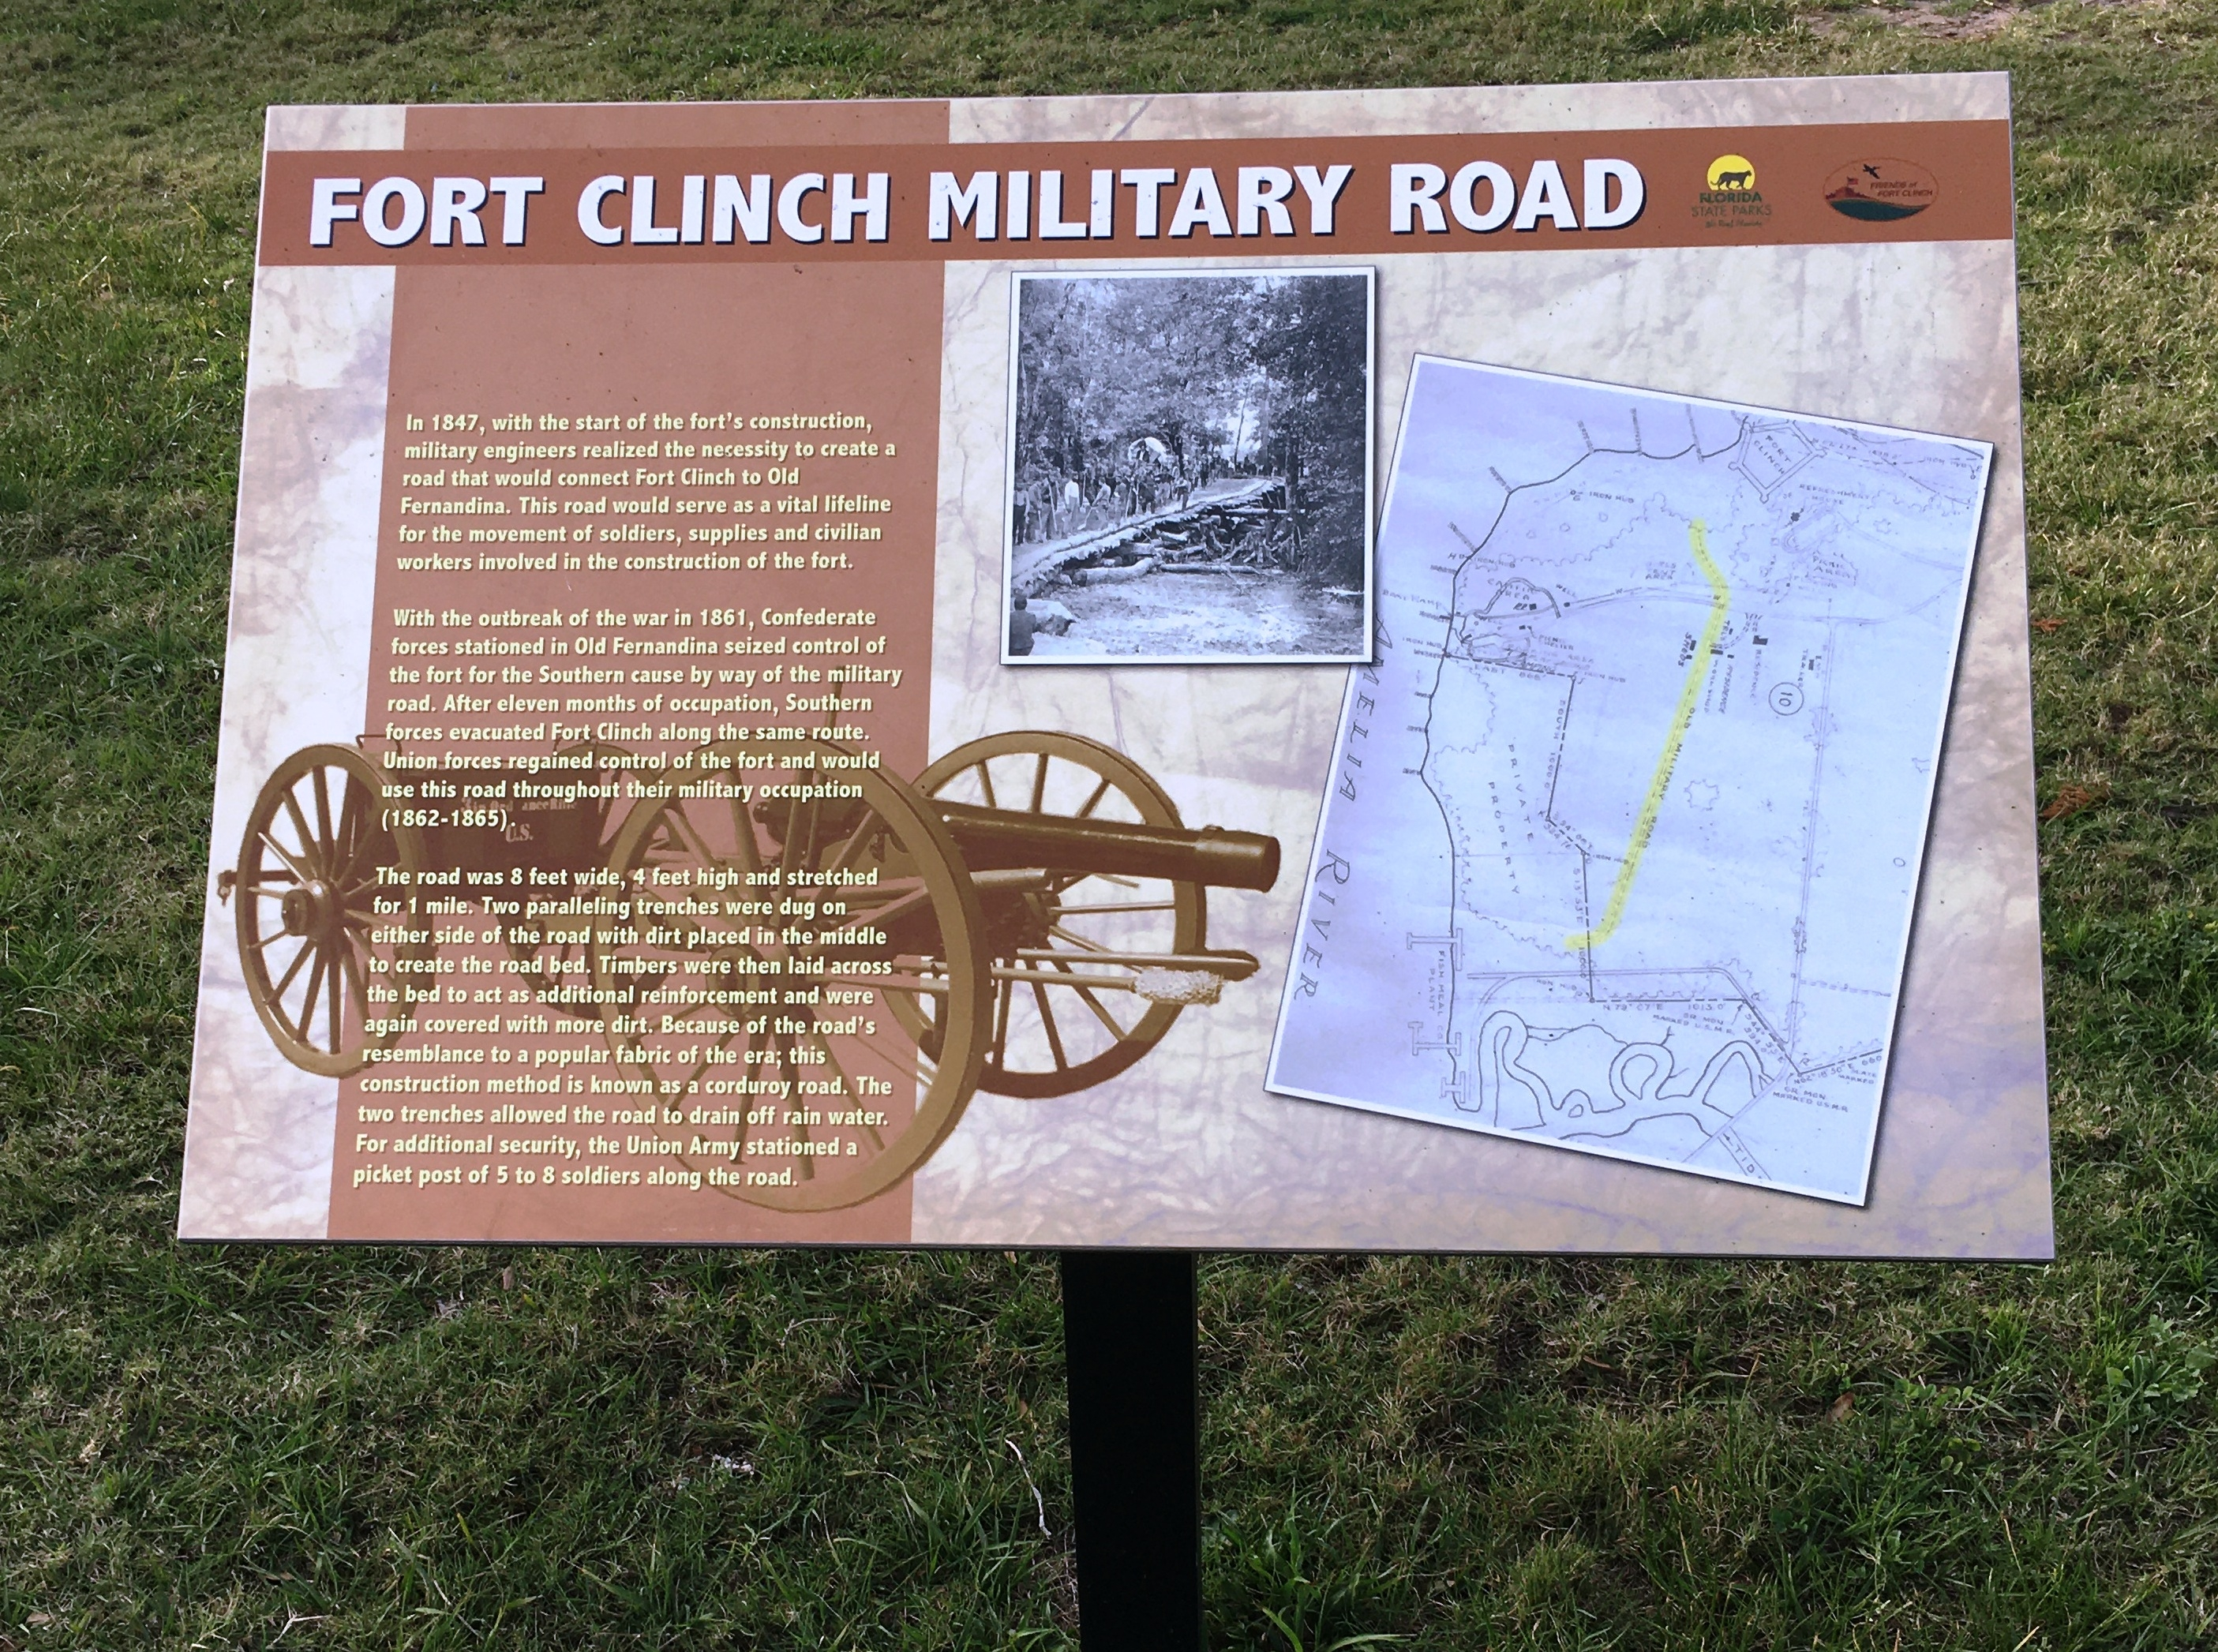 Fort Clinch Military Road Marker